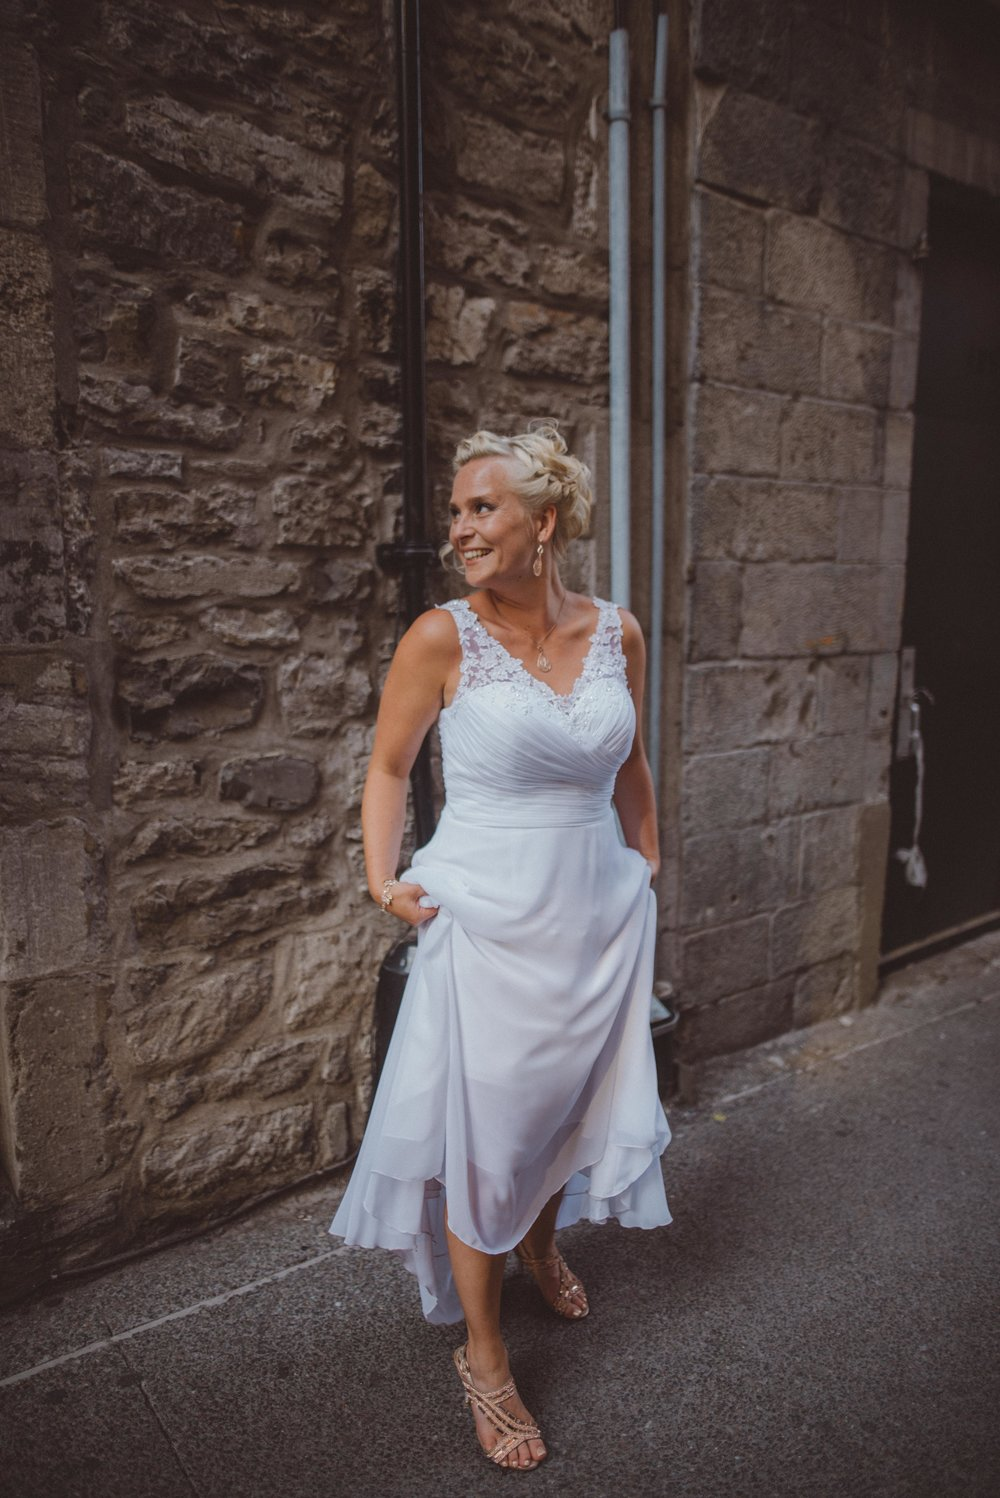 photographe_mariage_gatineau_photographer_montreal_wedding_ottawa-38.jpg